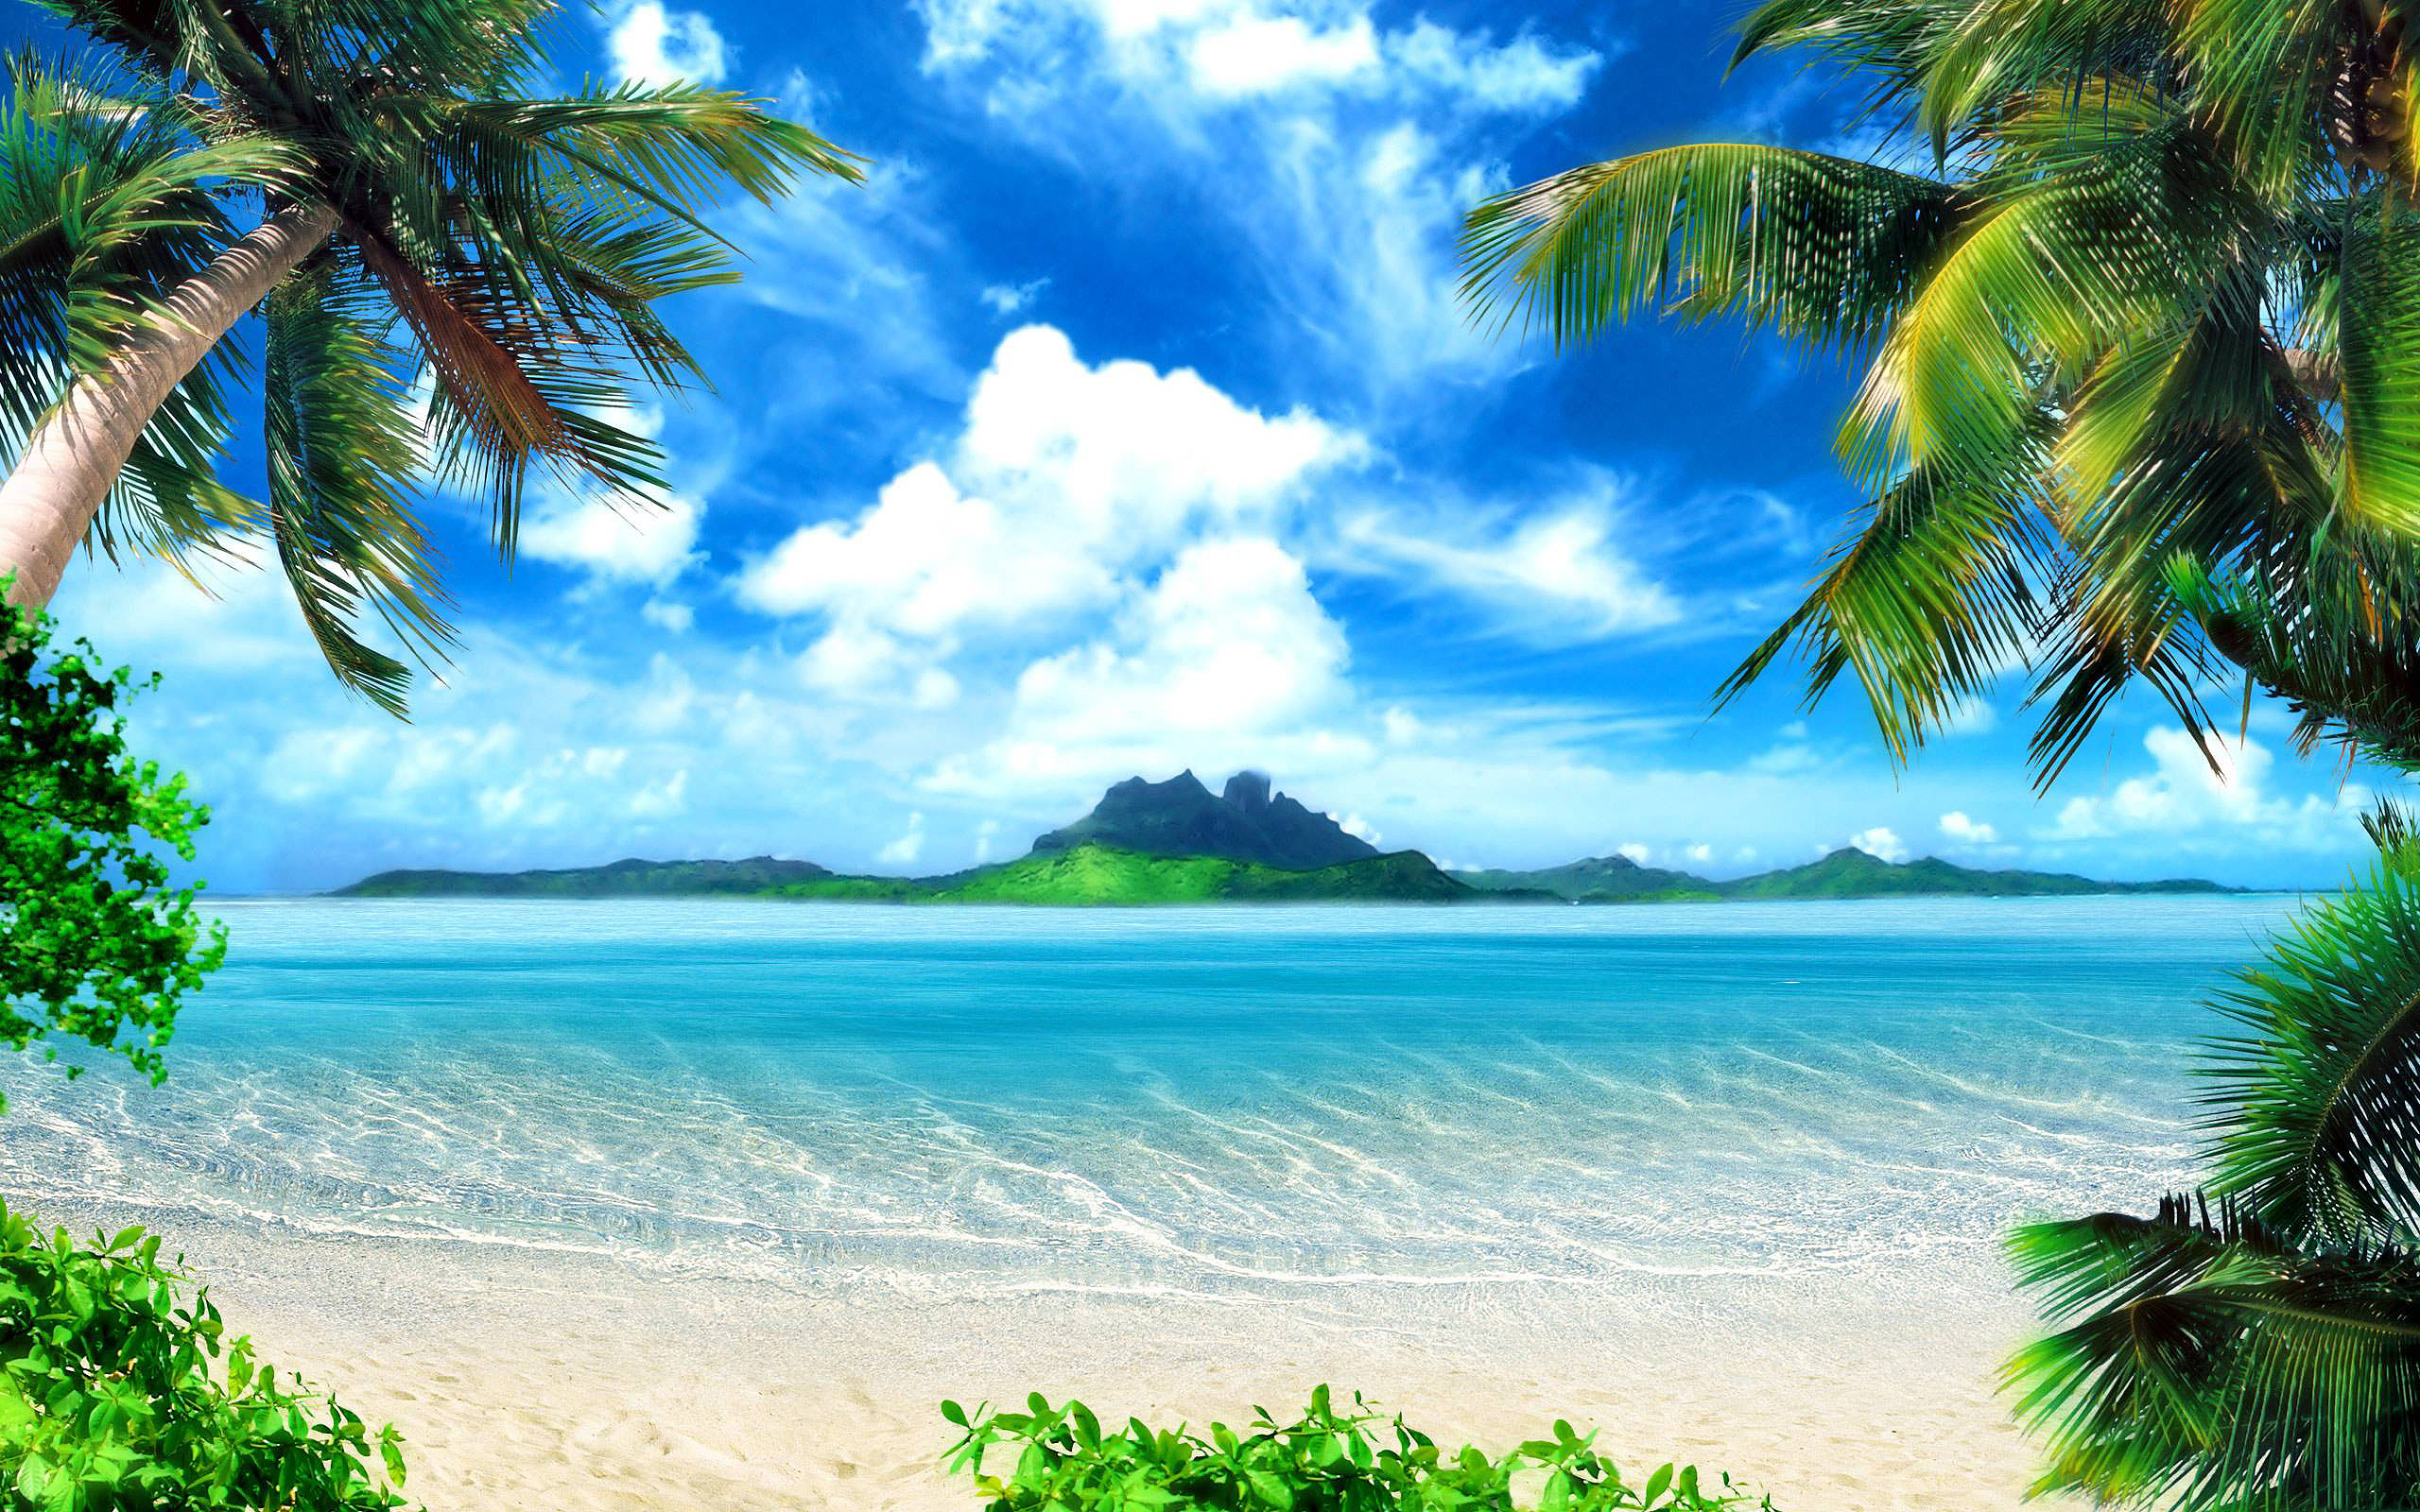 Beach Wallpaper wallpaper Tropical Beach Wallpaper hd wallpaper 2560x1600